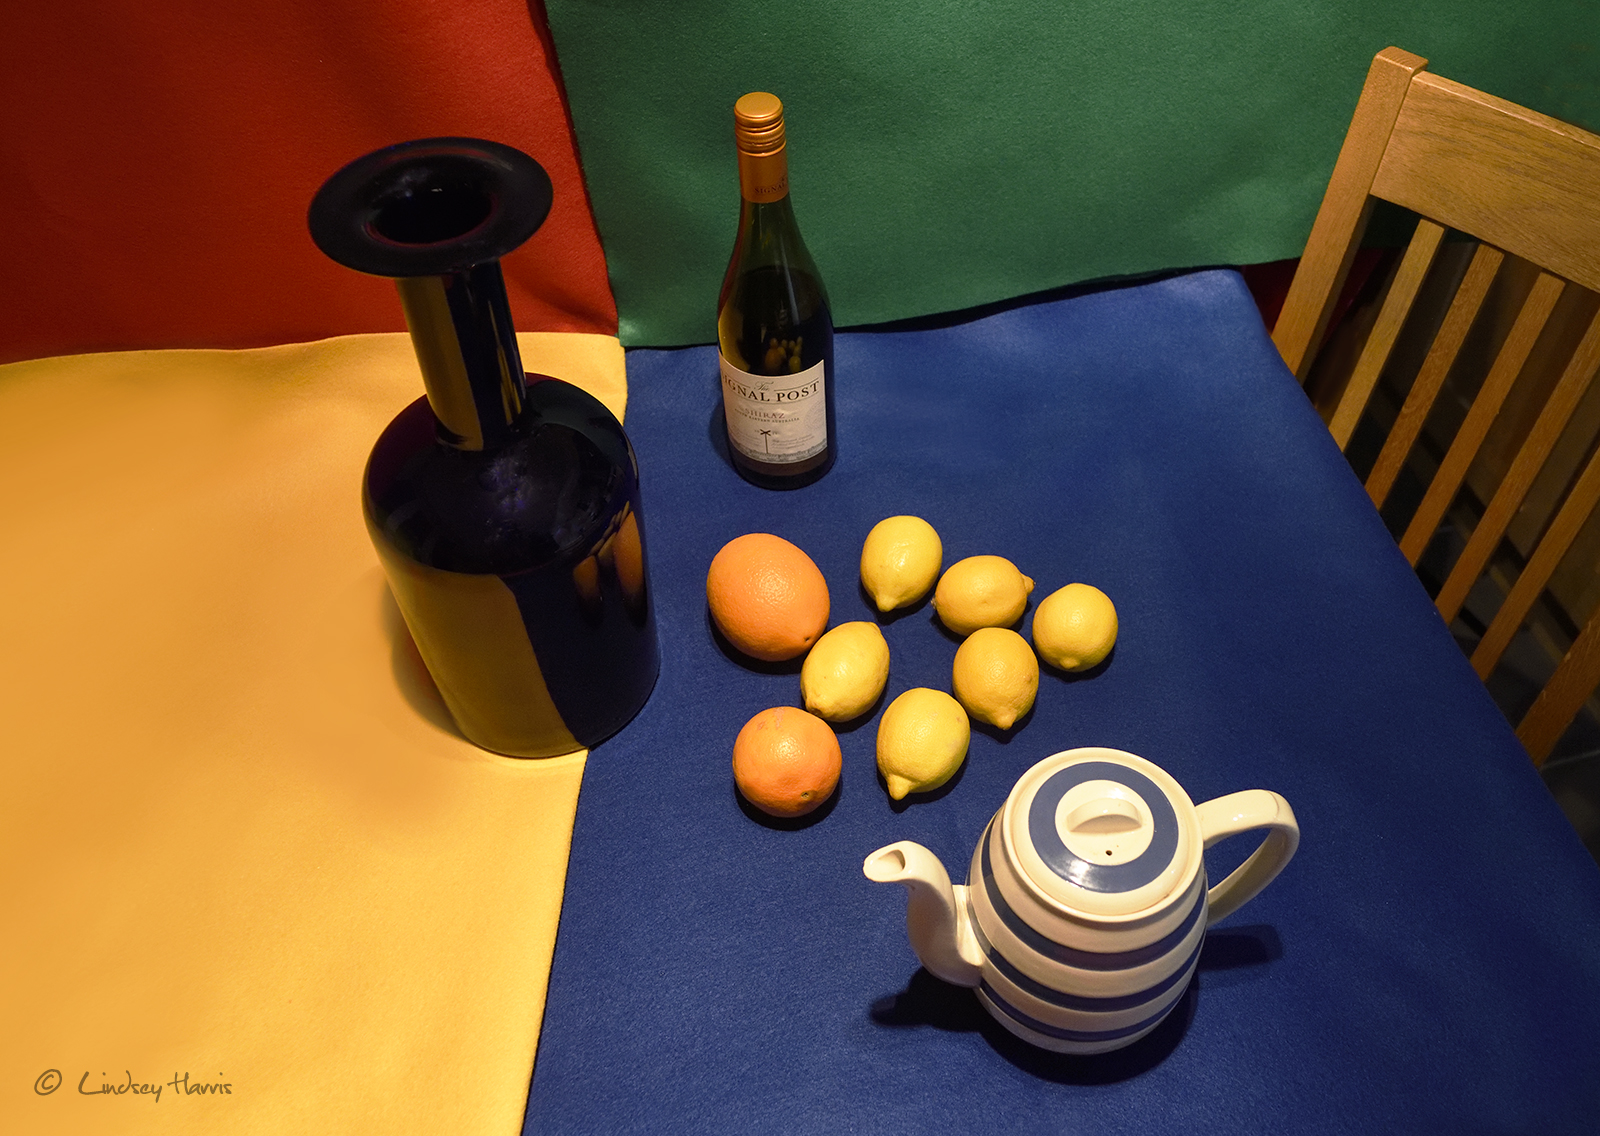 Original photo for Matisse style cut out still life photography class 17th March 2018, Holt, Dorset.